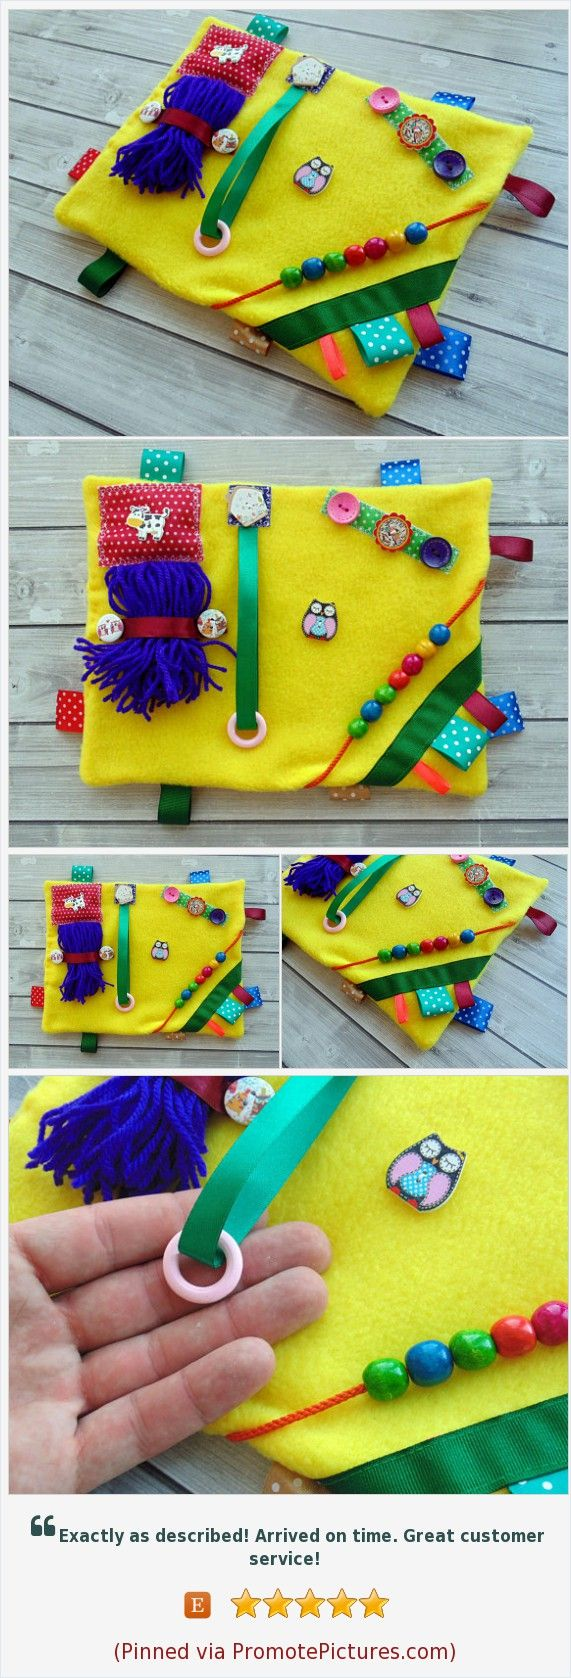 29 best Busy Boards made MaxiBabyToys images on Pinterest | Activity ...